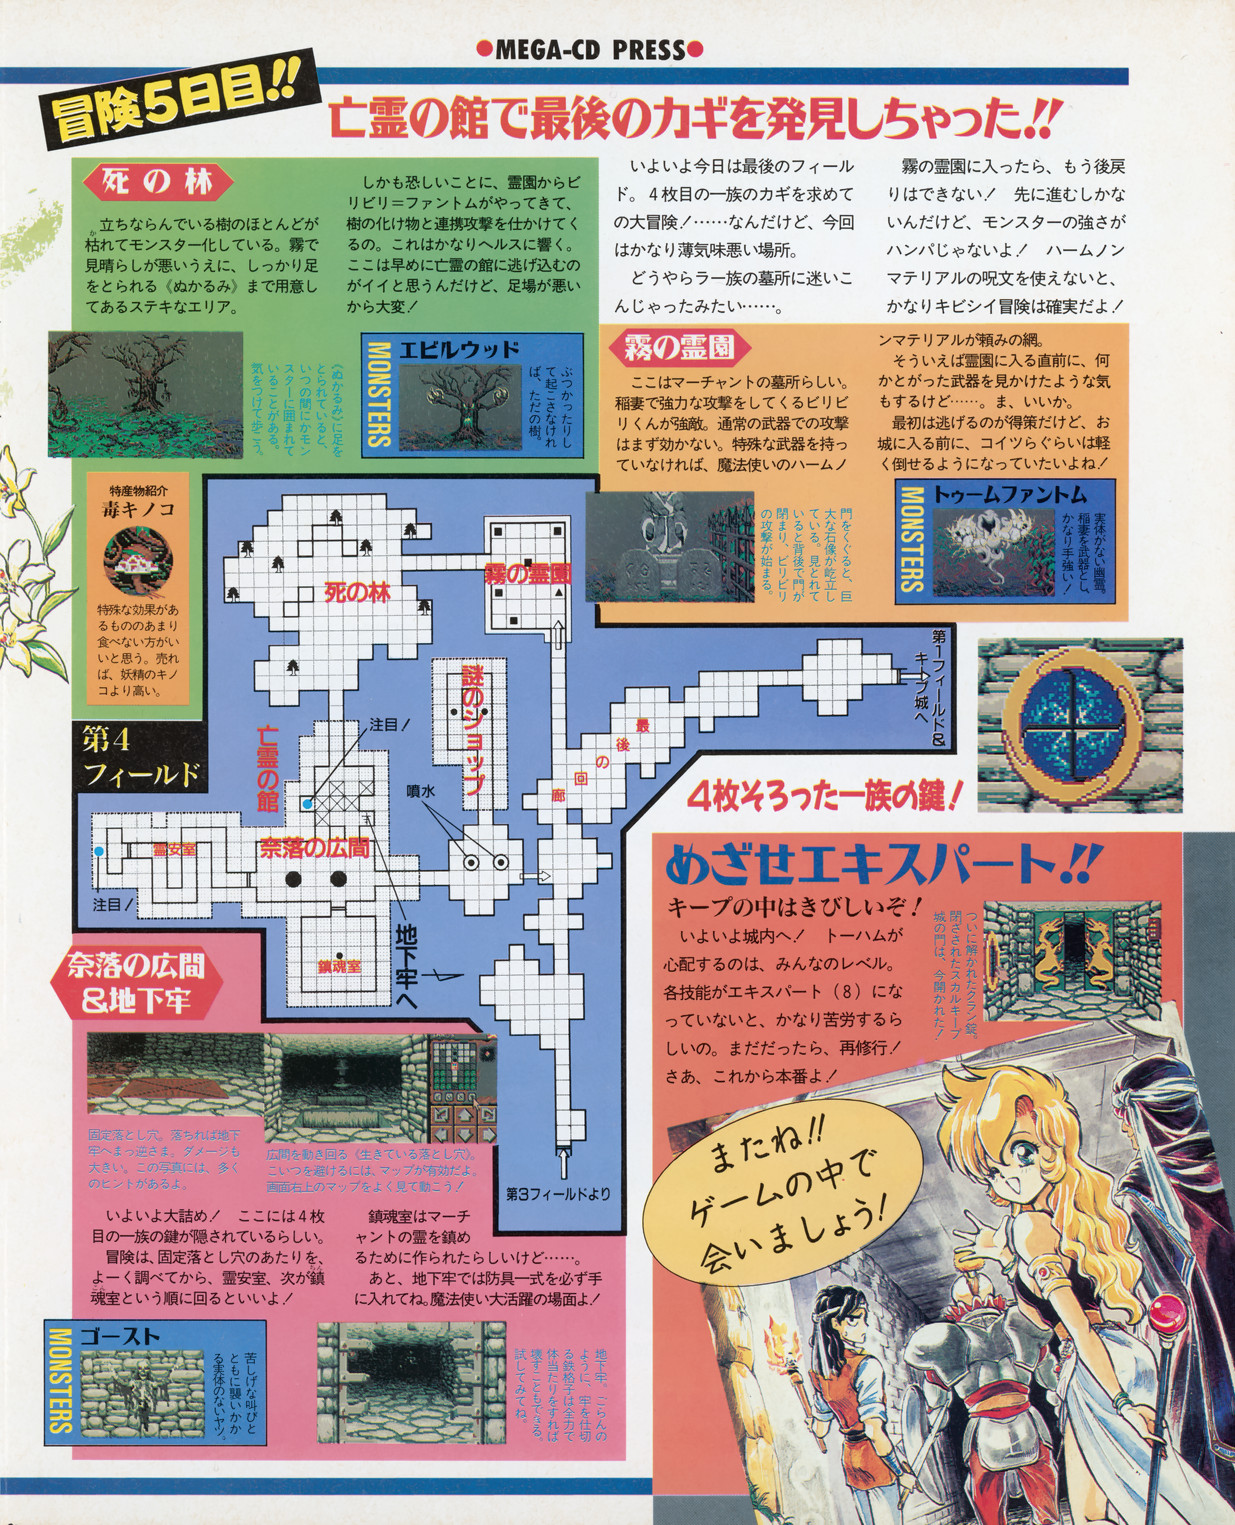 Dungeon Master II for Mega CD Hints published in Japanese magazine 'Beep! MegaDrive', May 1994, Page 119